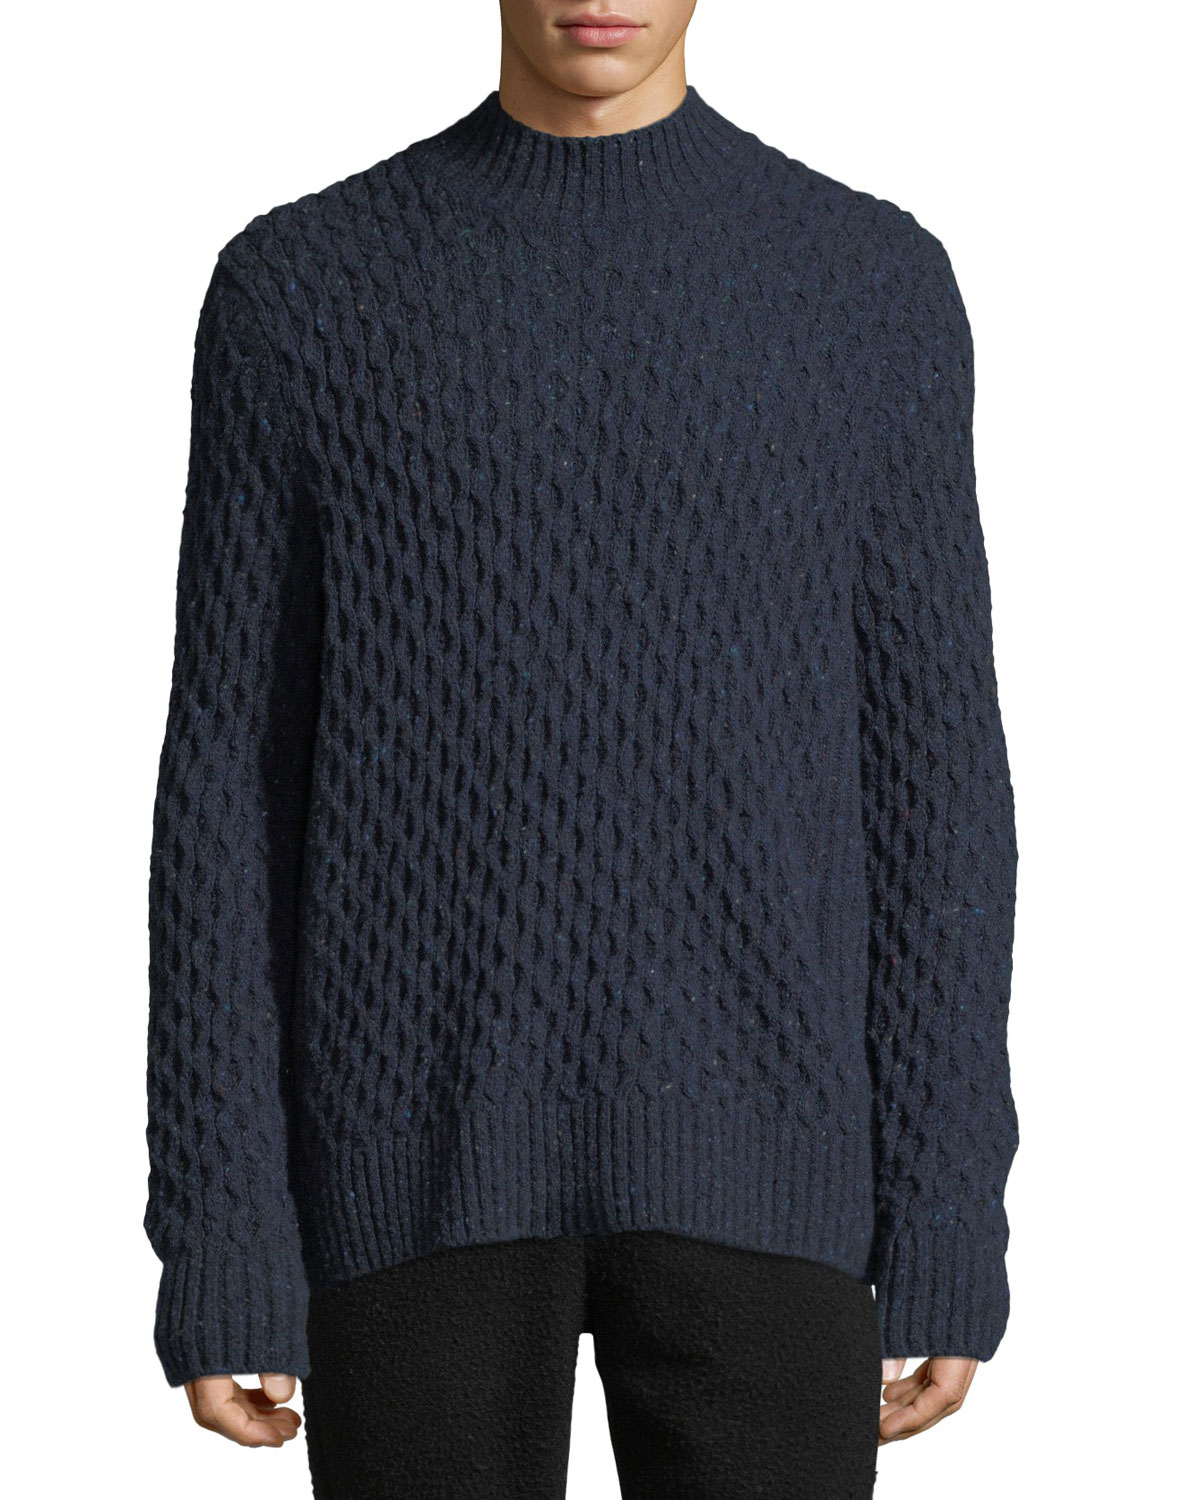 Men's Mock Neck Honeycomb Knit Wool Blend Sweater by Vince